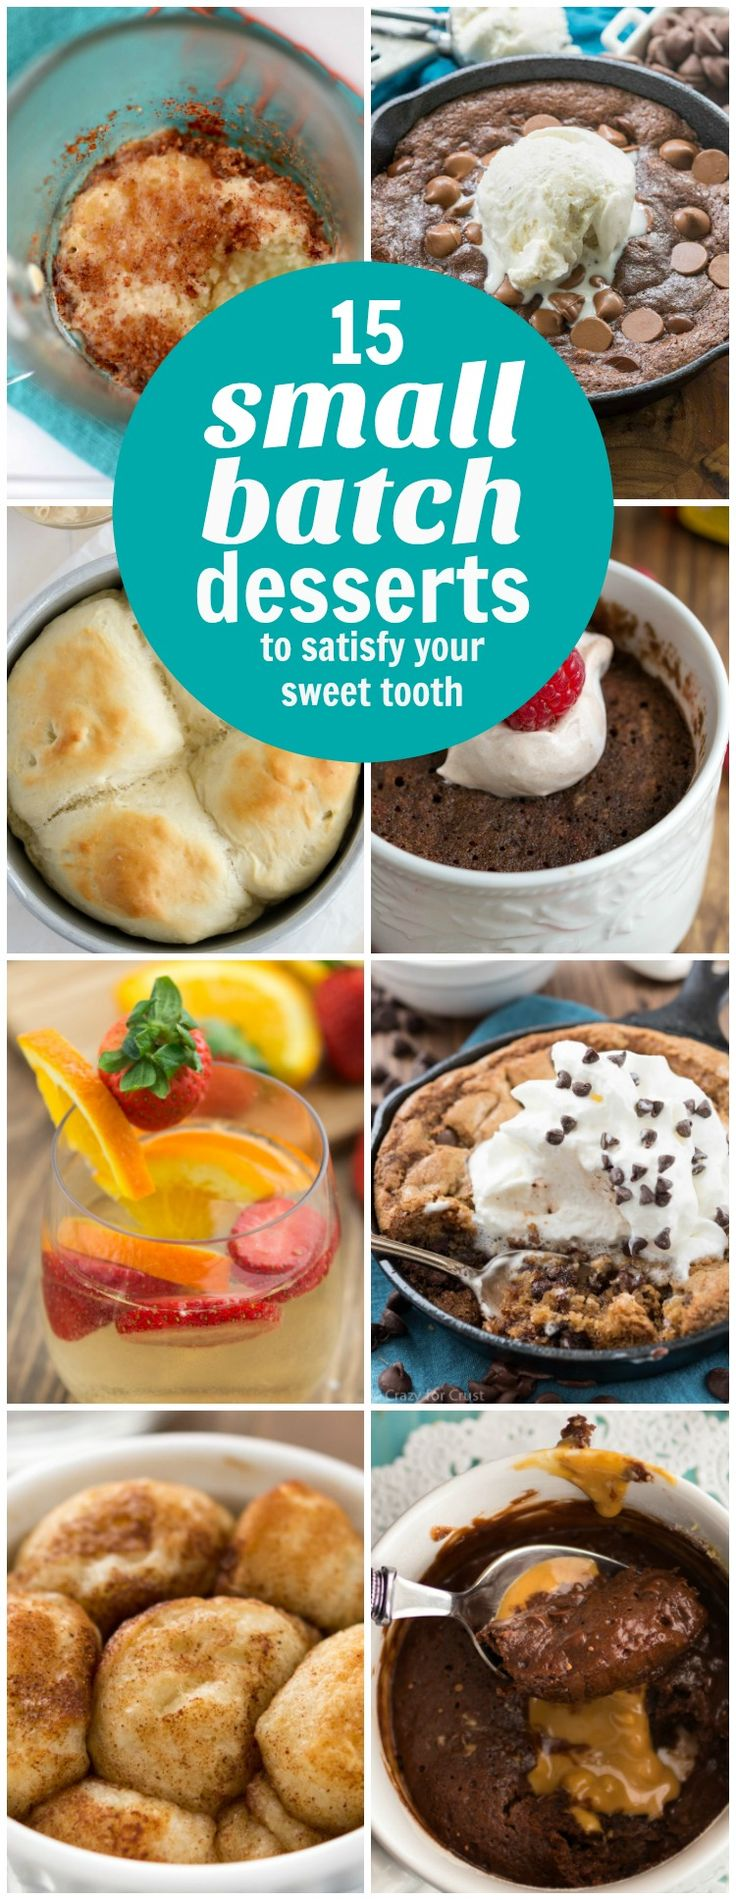 Small Batch Dessert Recipes to satisfy your sweet tooth in a BIG WAY. Cookies, cake, brownies, sangria, monkey bread...everything in single-serve size!